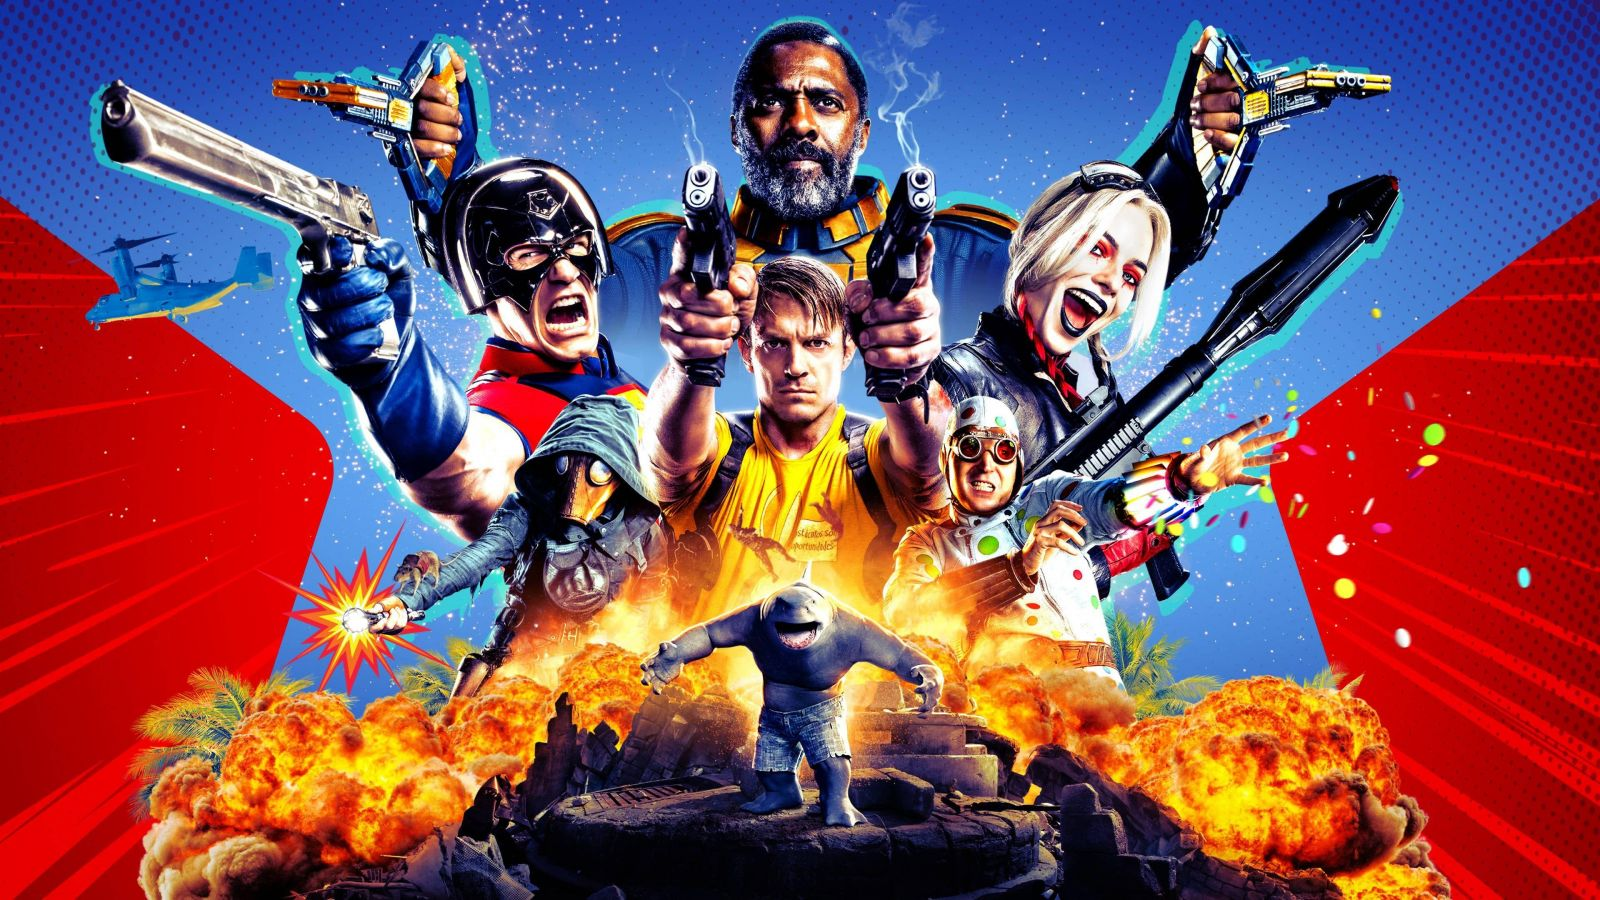 The Suicide Squad (2021) Full Movies Full HD Watch Online Free